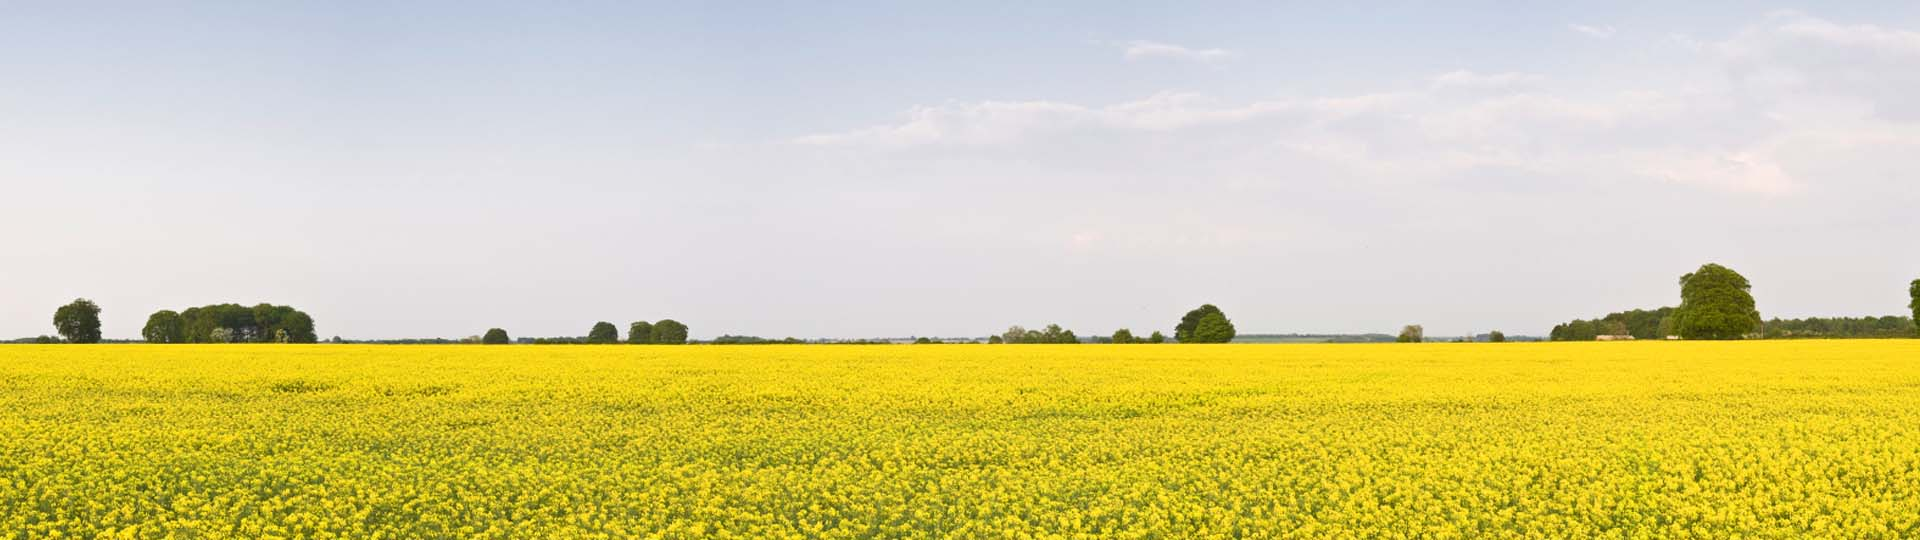 a field of entirely yellow flowers with some trees in the distance all under a blue sky